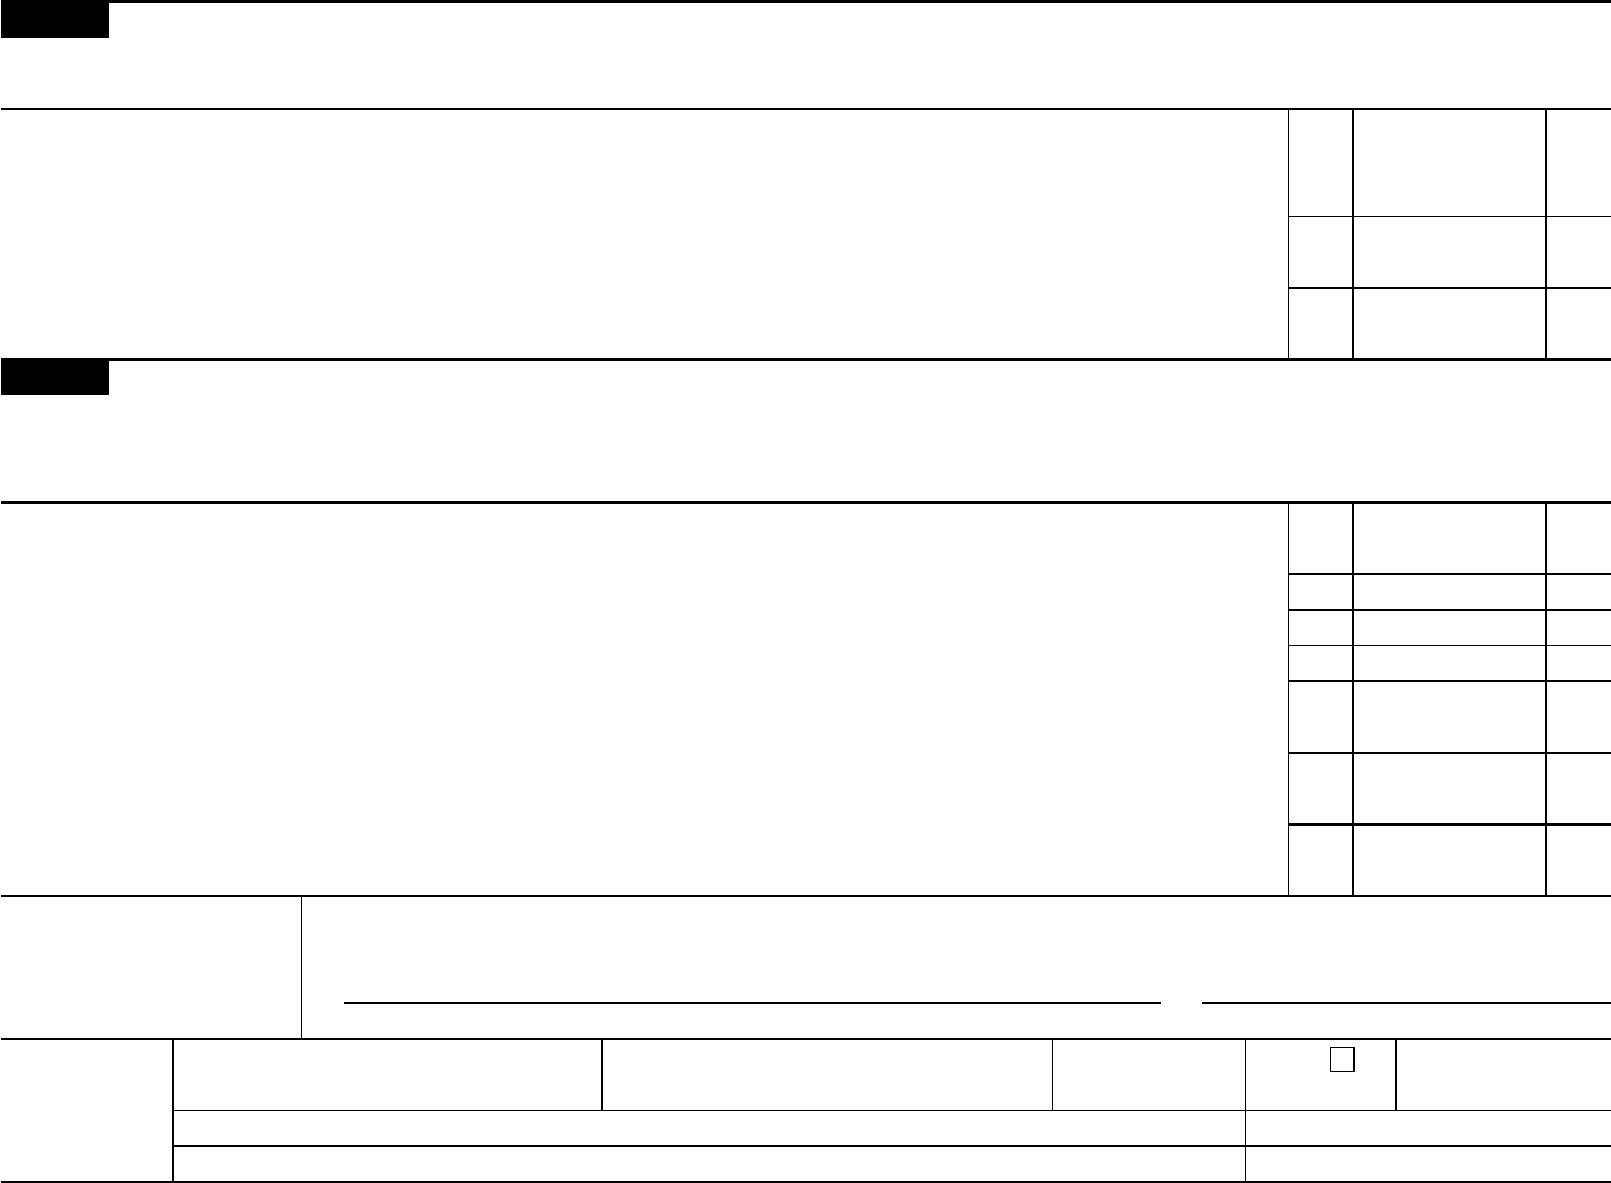 Form 8606 Instructions Images - form 1040 instructions